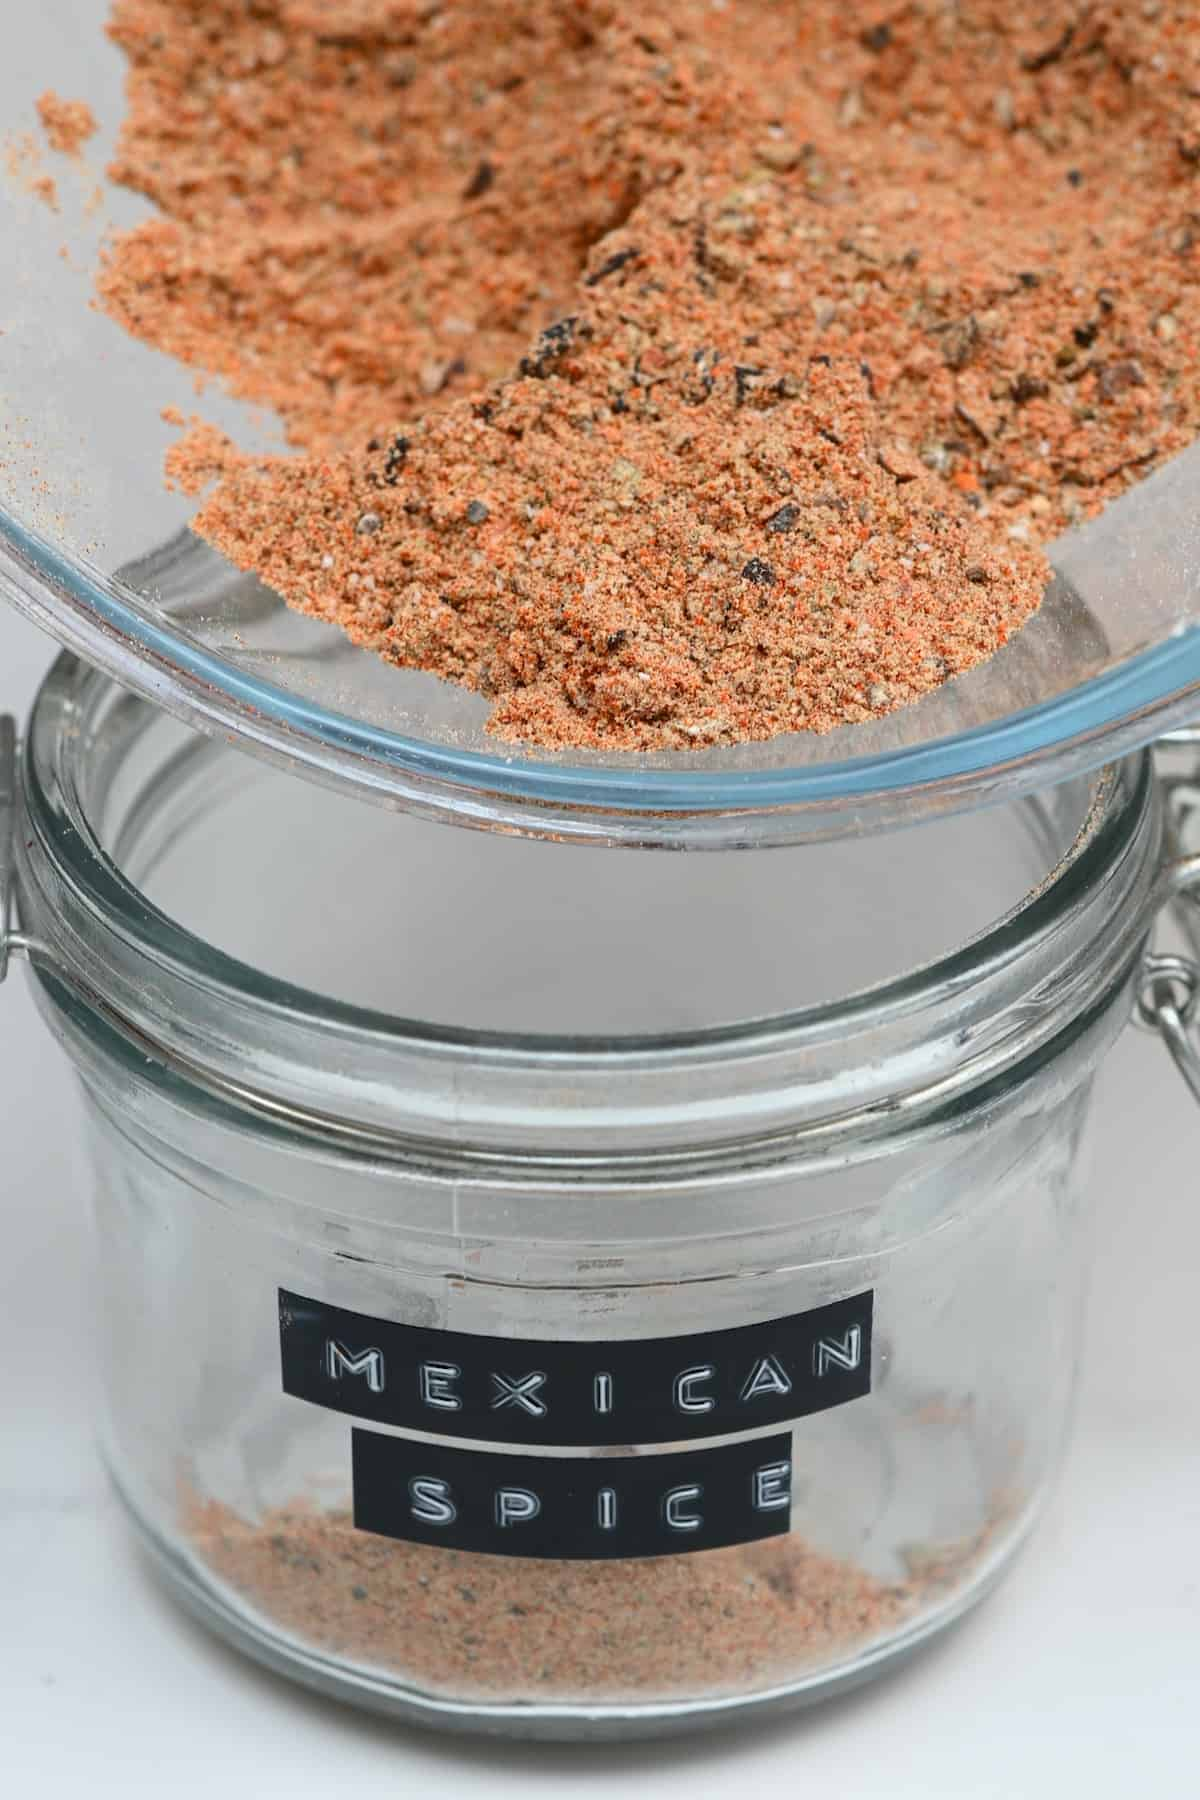 Pouring Mexican spice blend in a jar